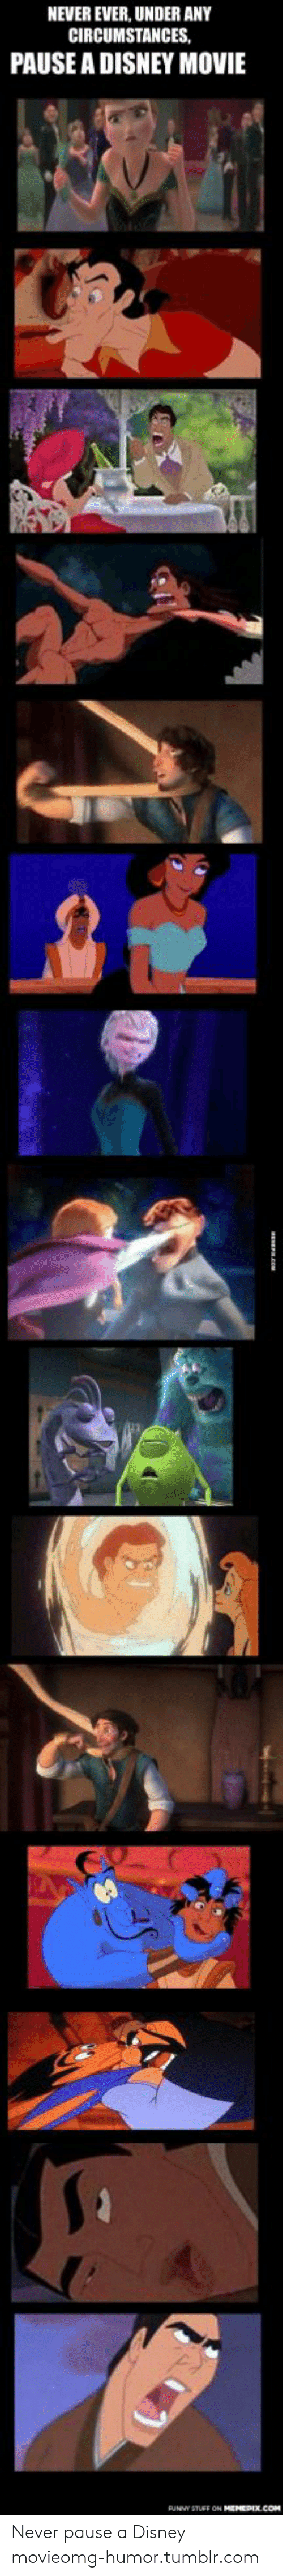 Never Pause A Disney Movie: NEVER EVER, UNDER ANY  CIRCUMSTANCES,  PAUSE A DISNEY MOVIE  PUNNY STUFF ON MEMEPIX.COM Never pause a Disney movieomg-humor.tumblr.com